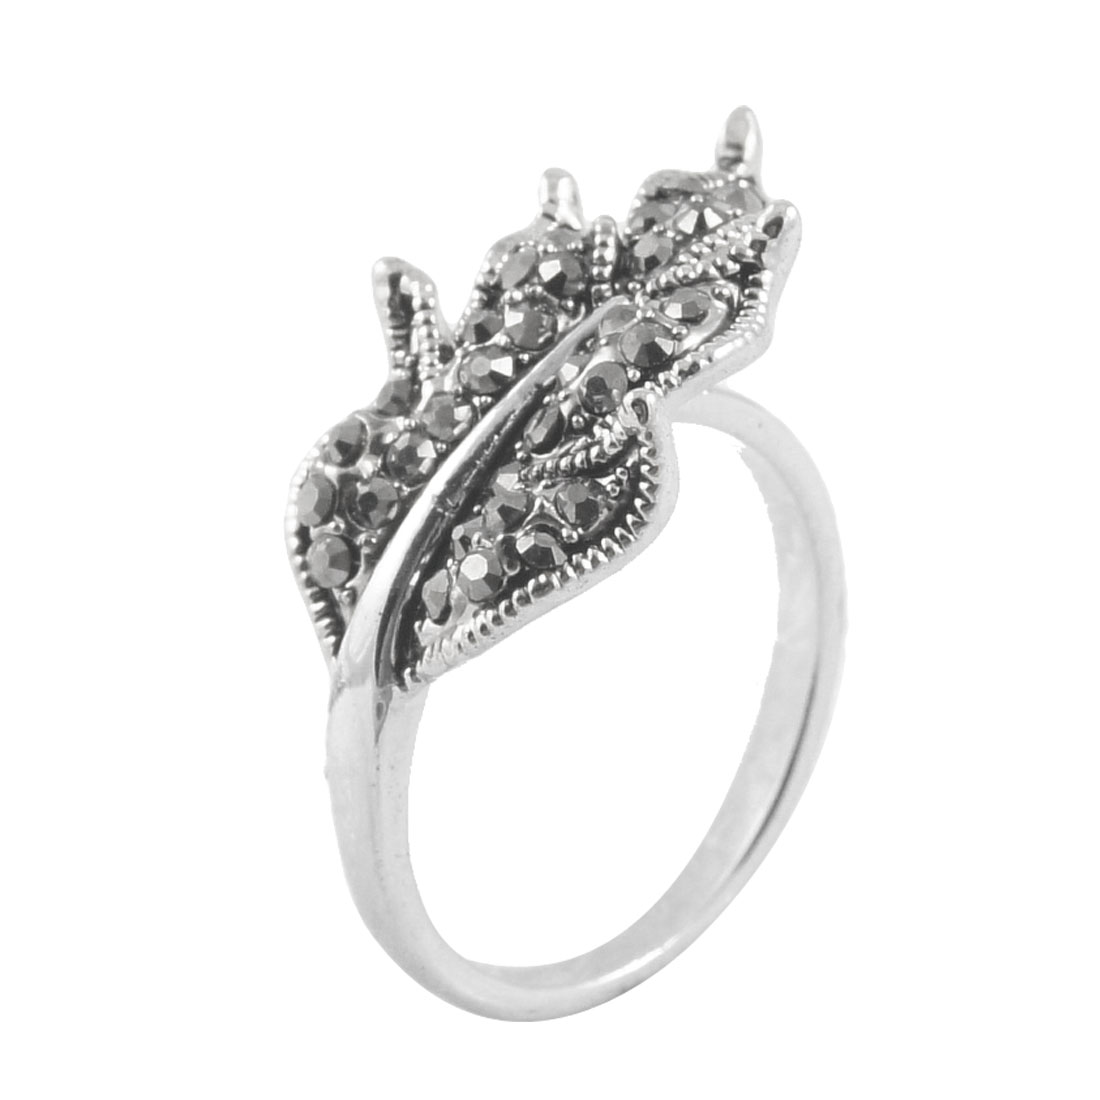 Gray Rhinestone Leaf Detail Silver Tone Finger Ring US 6 1/4 for Lady